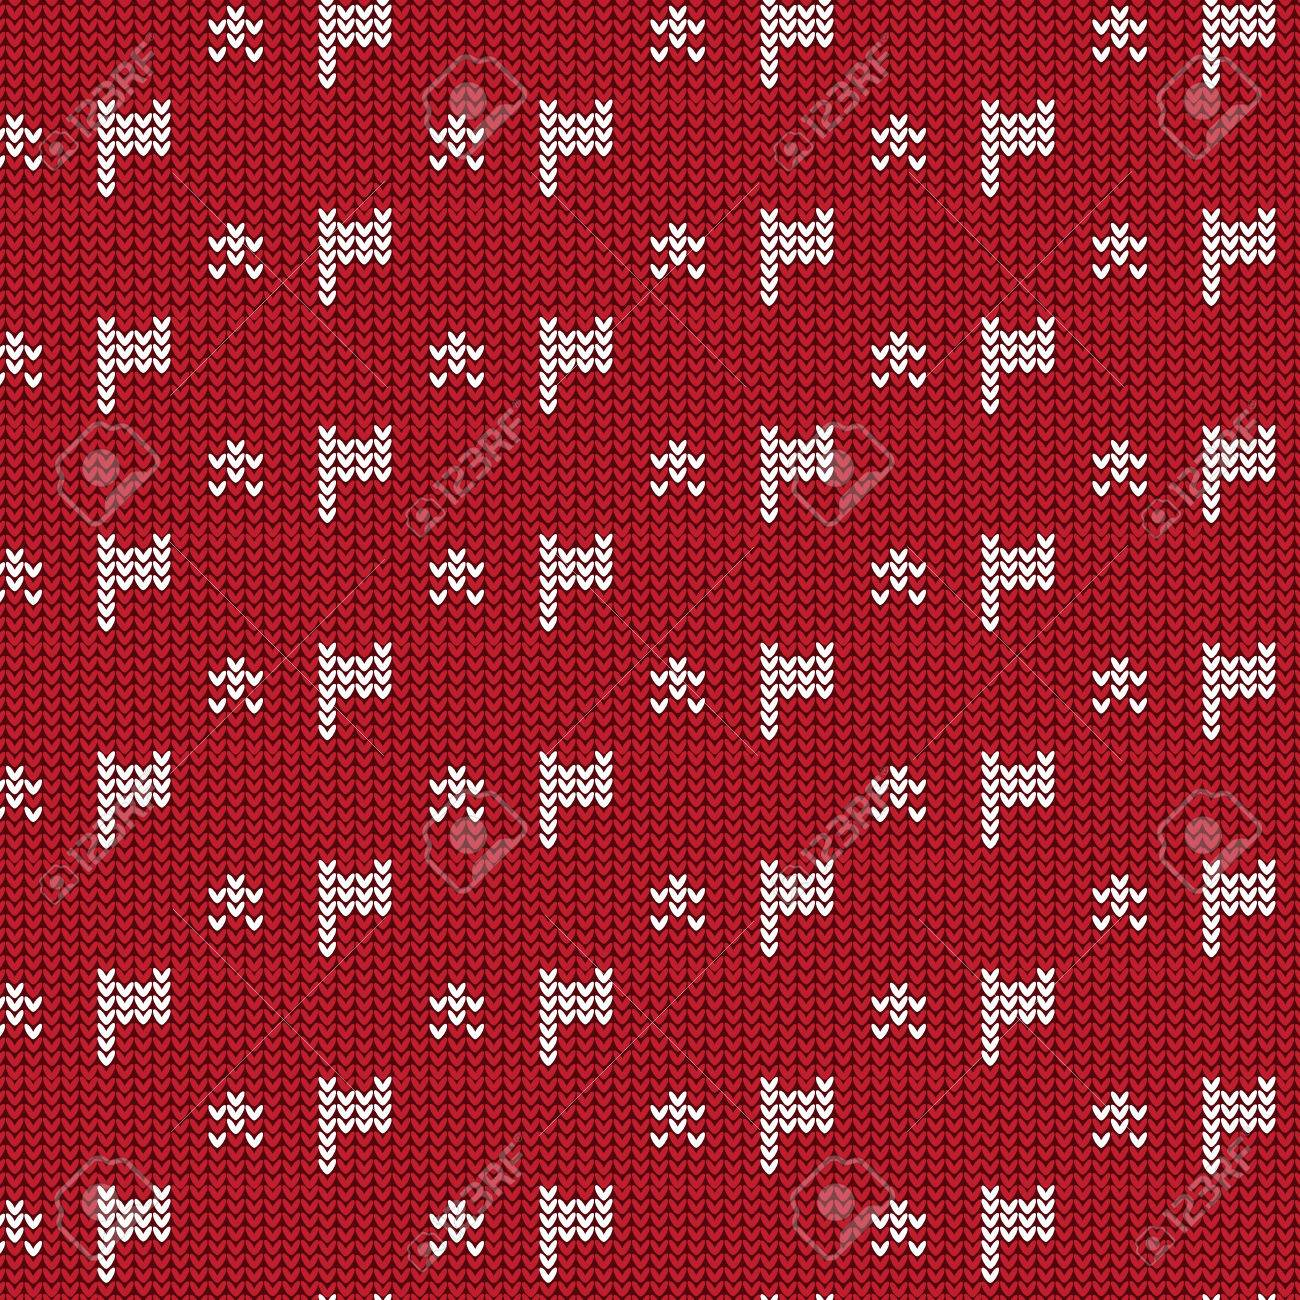 Red And White Flag With Star Knitting Pattern Background Vector ...